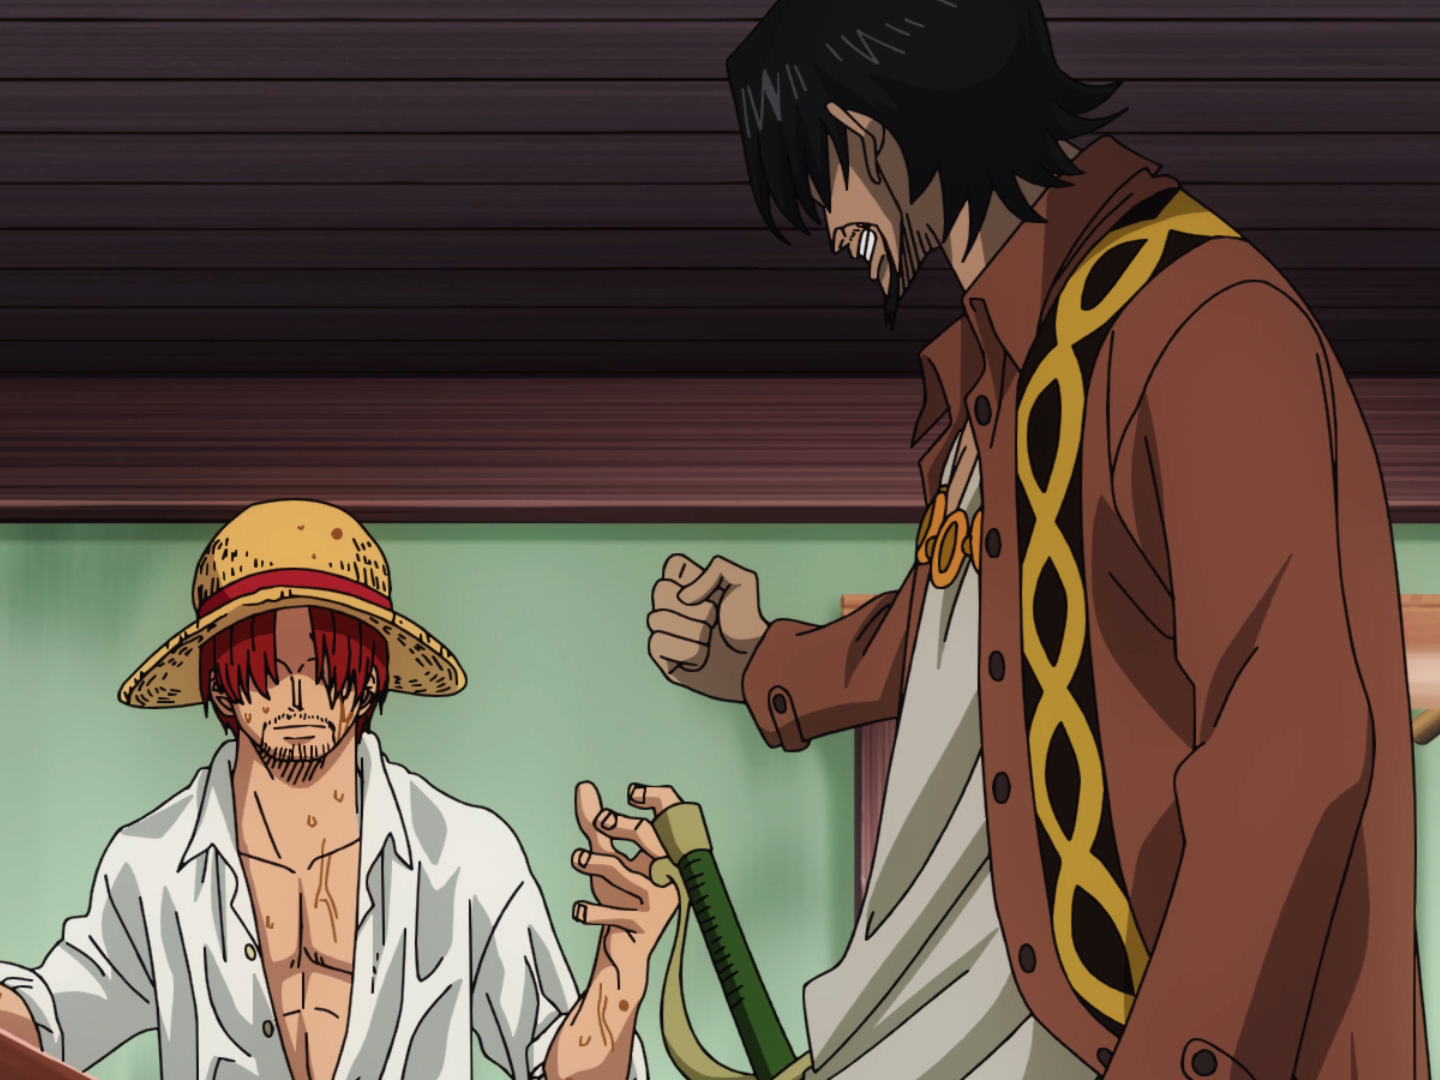 File:Higuma Mocks Shanks.png